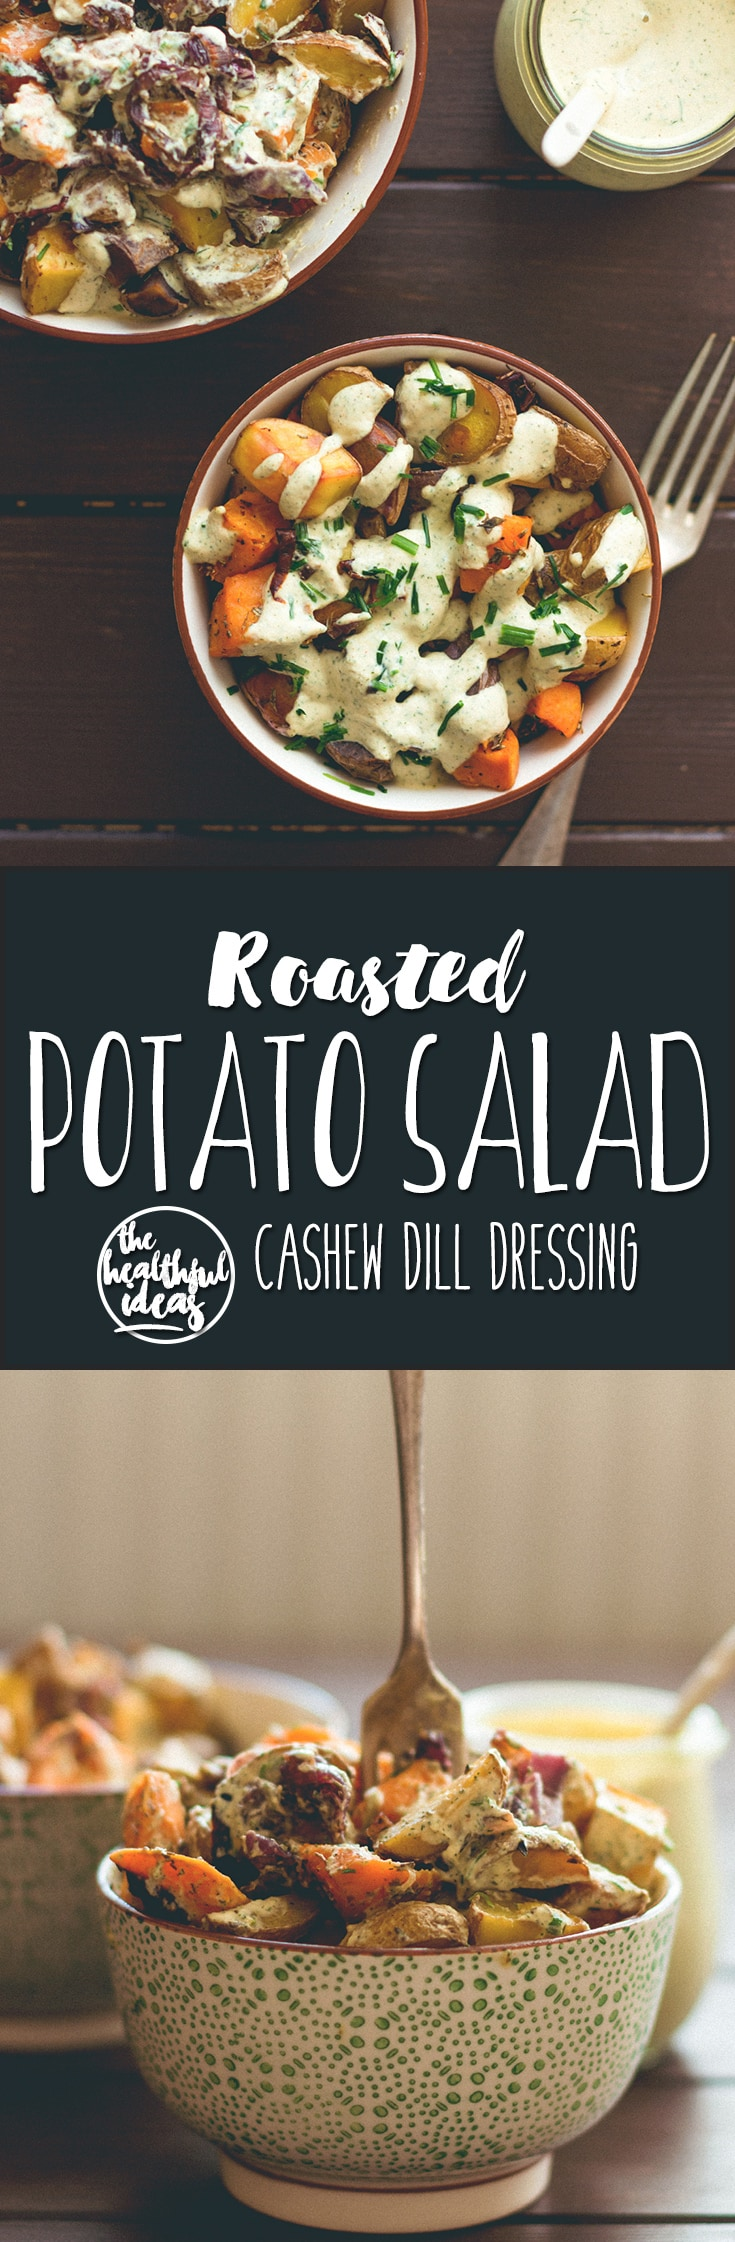 Roasted Potato Salad with Dill Cashew Dressing (vegan, gluten-free) - this is the perfect side dish or a great addition to vegan brunch. Potatoes roasted with herbs, drizzled with amazing cashew dressing with dill. | thehealthfulideas.com